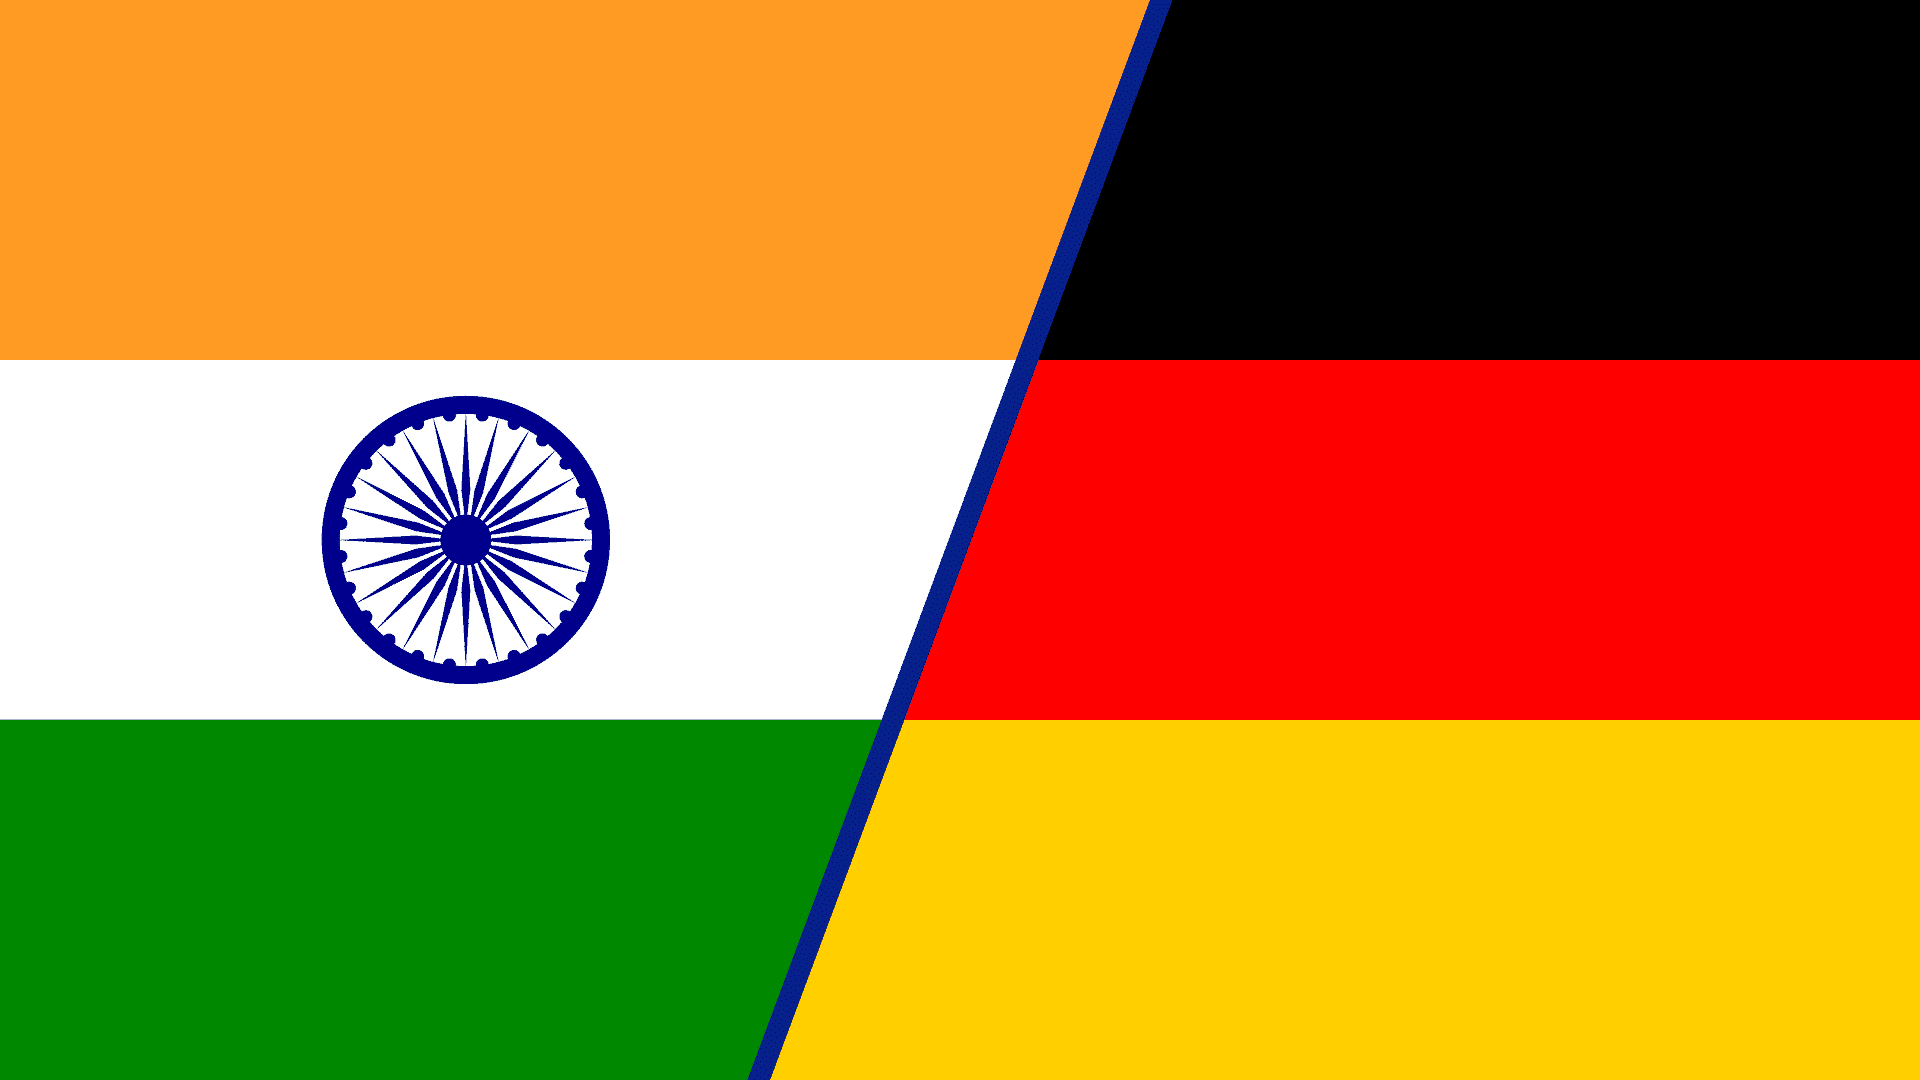 India and Germany